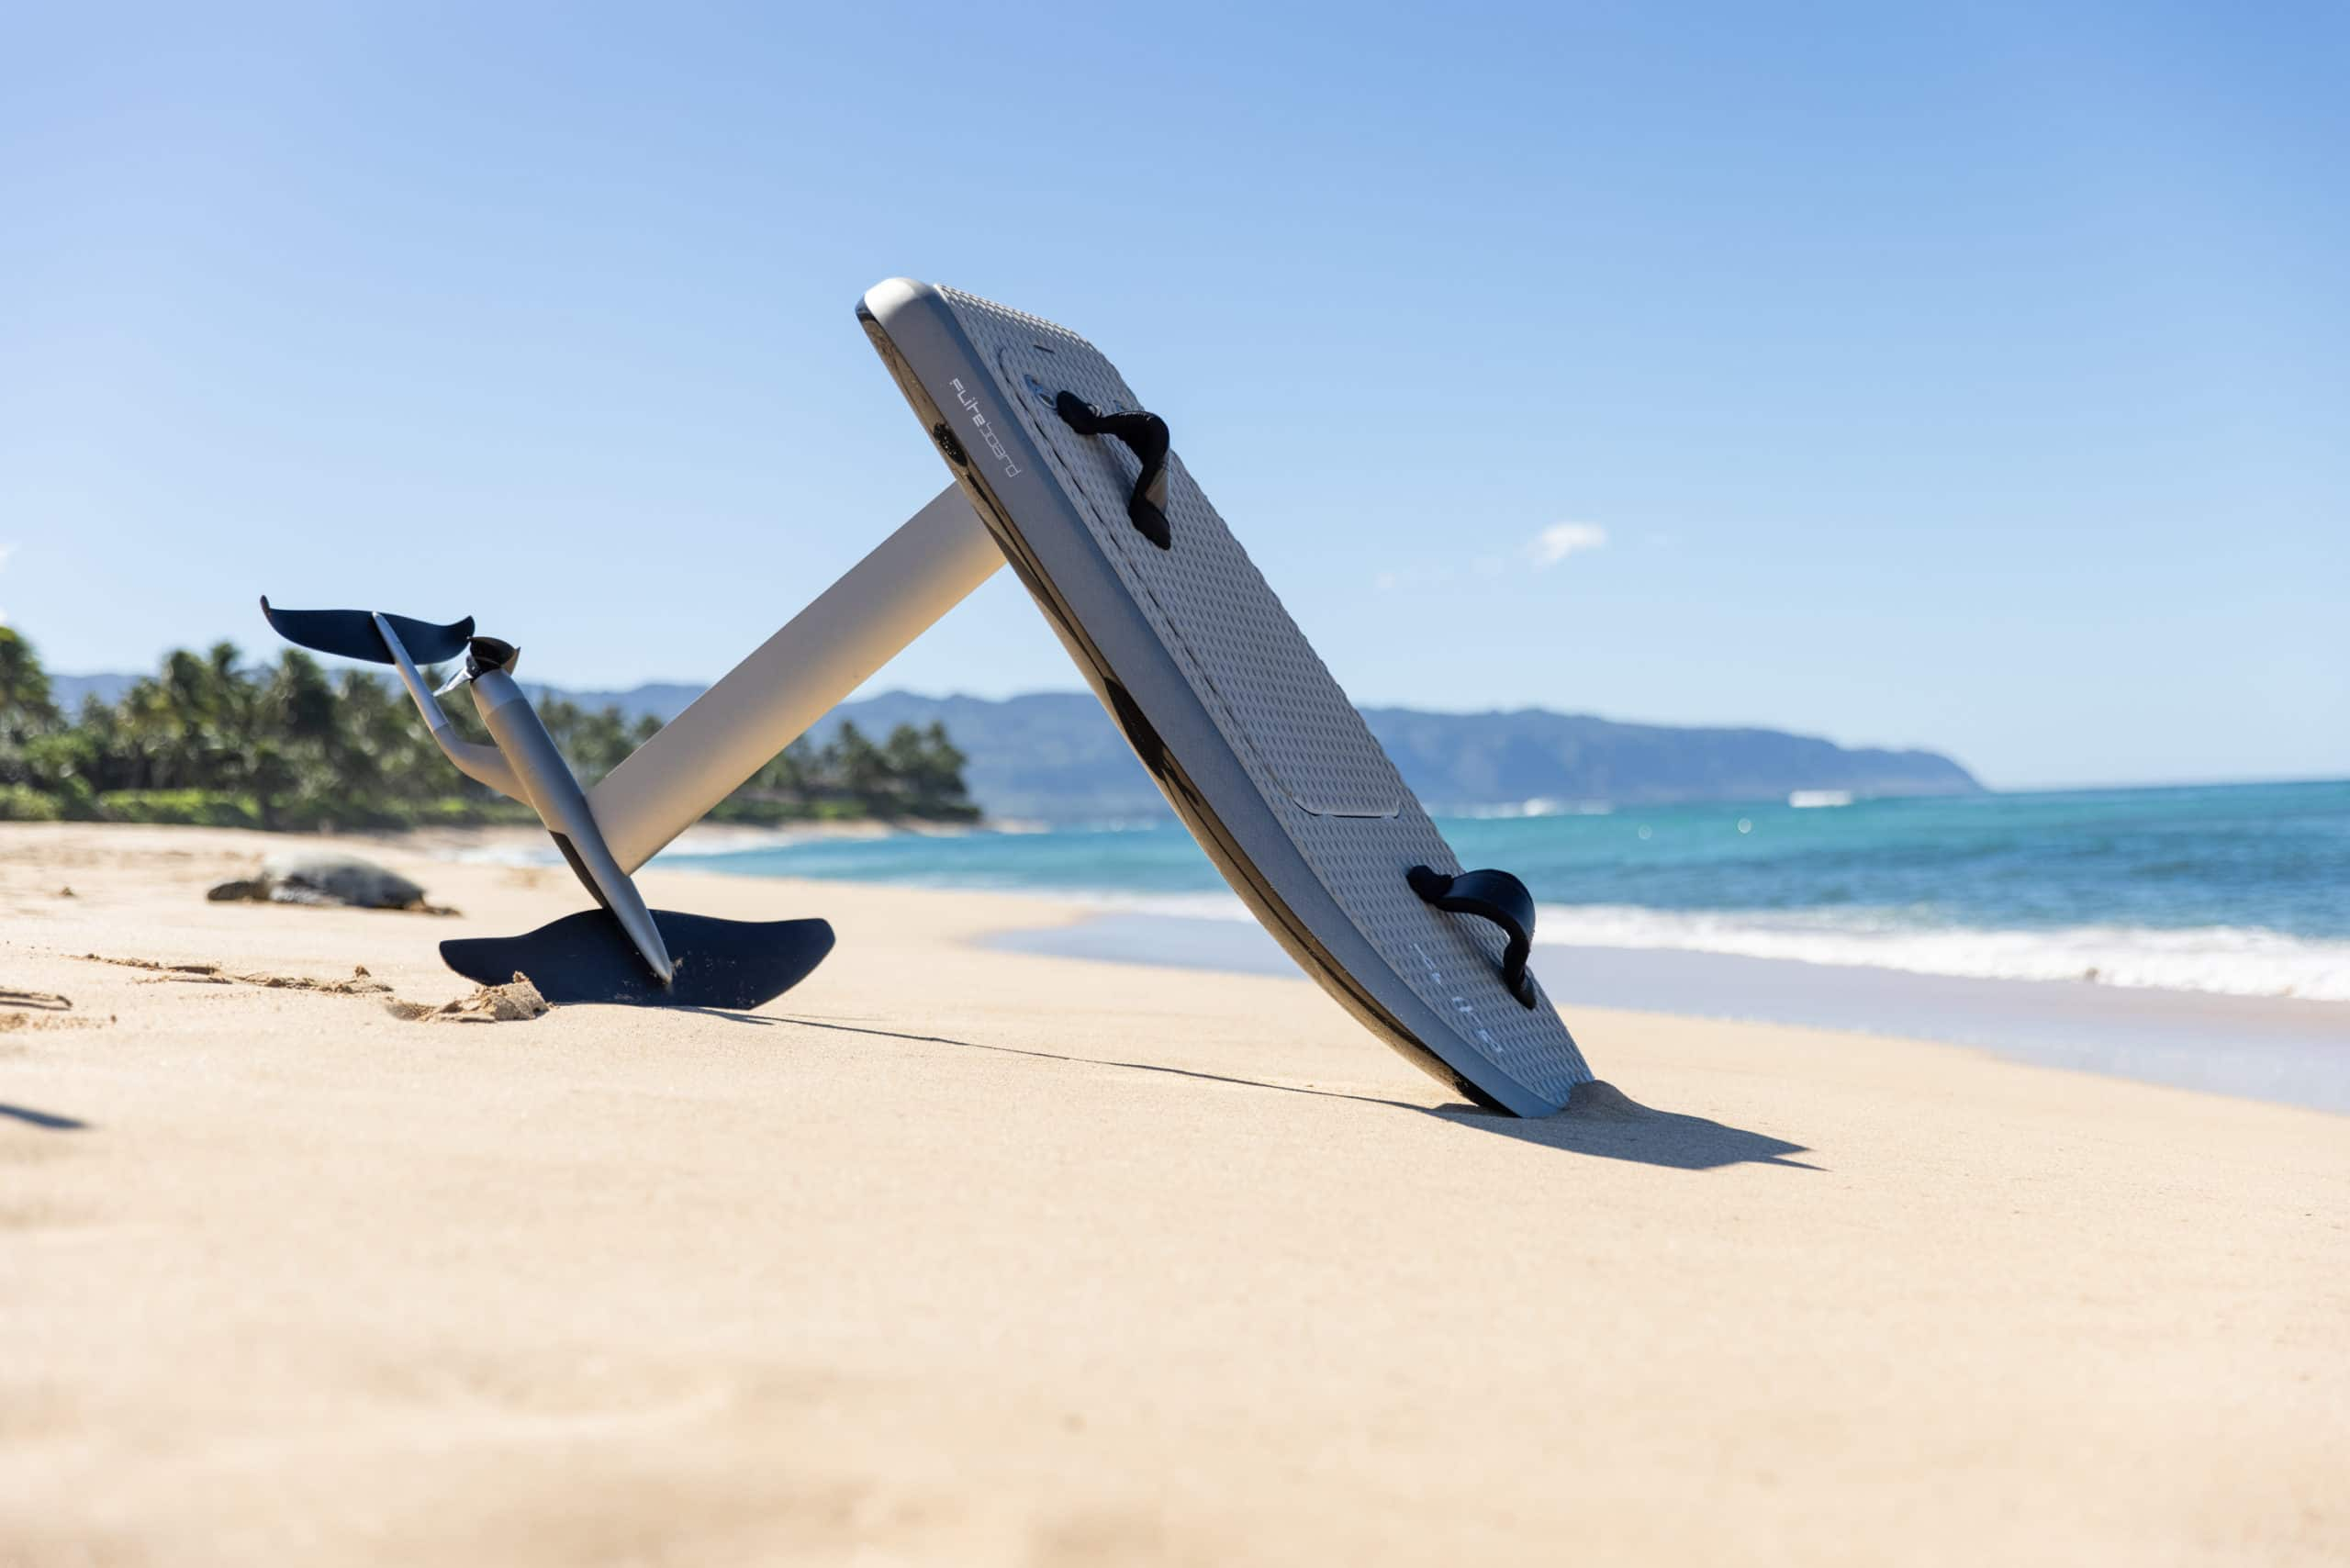 Fliteboard Series 2 pictured on a beach